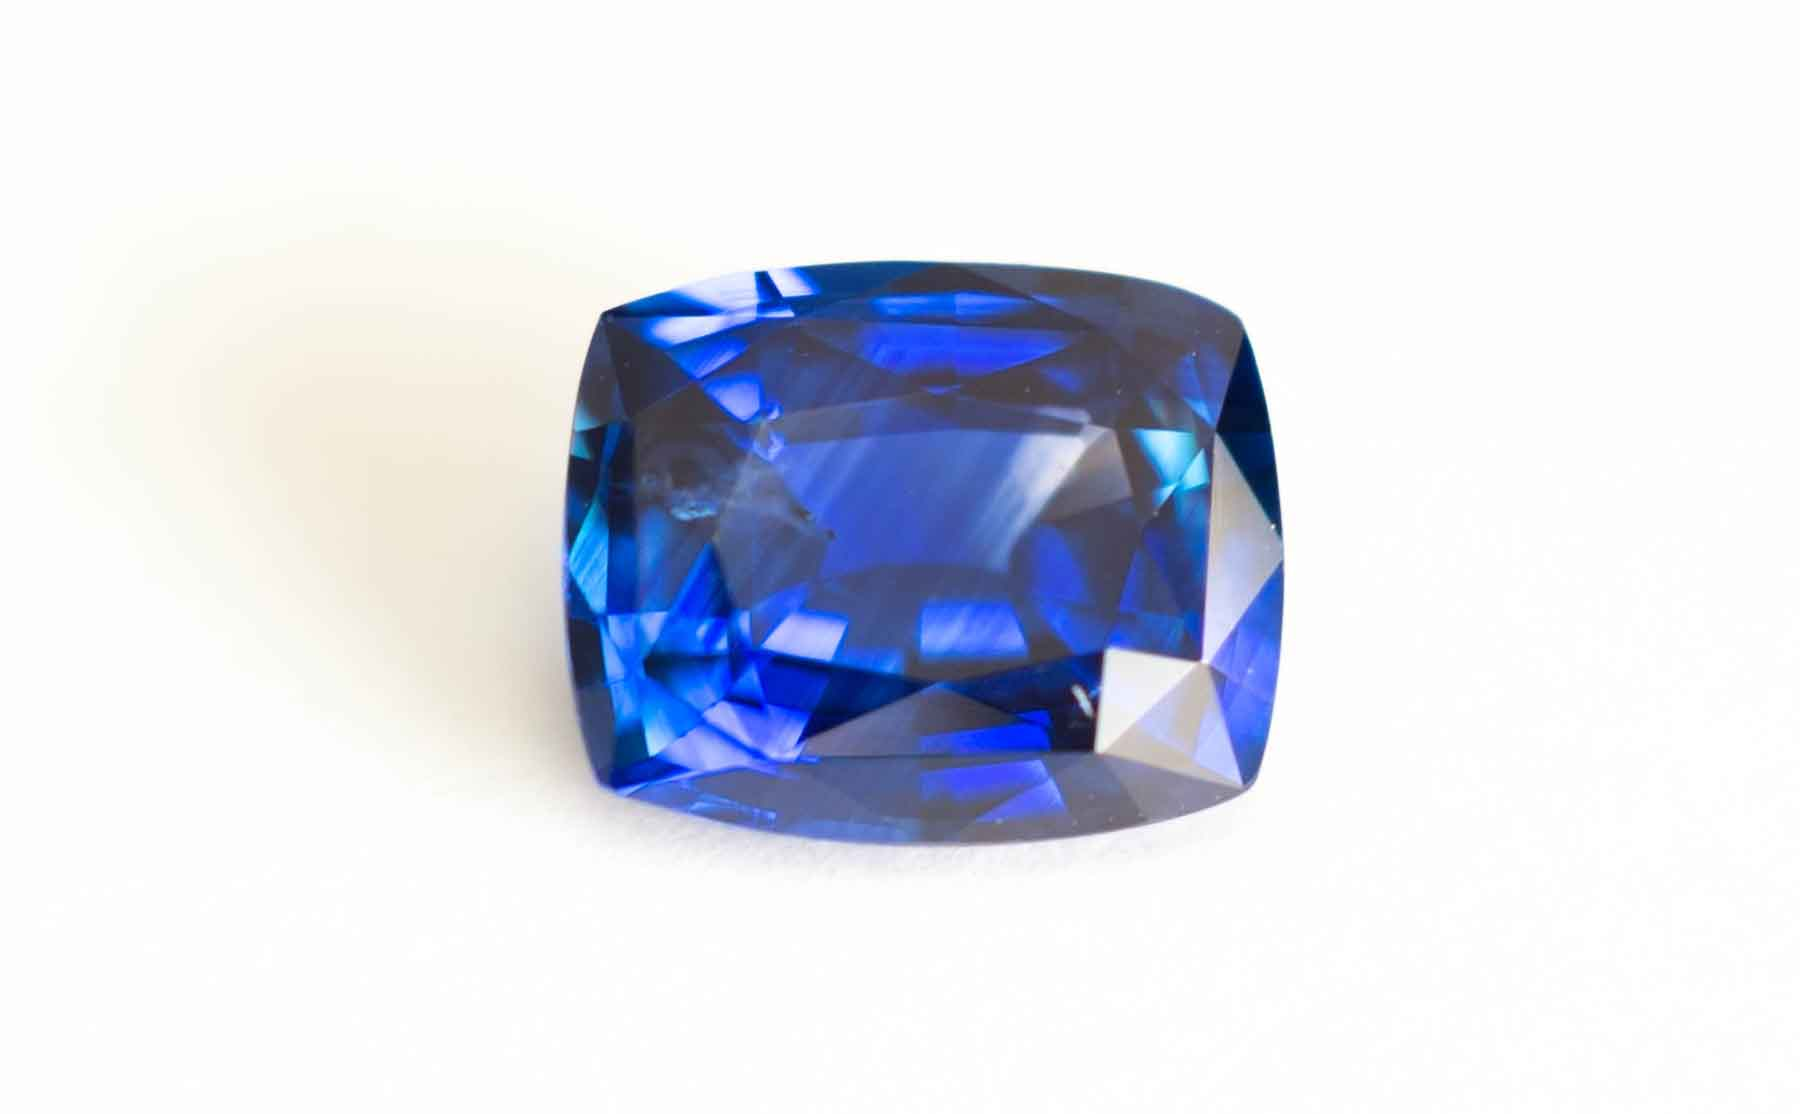 3.24ct Blue sapphire. Excellent color with a few inclusions.